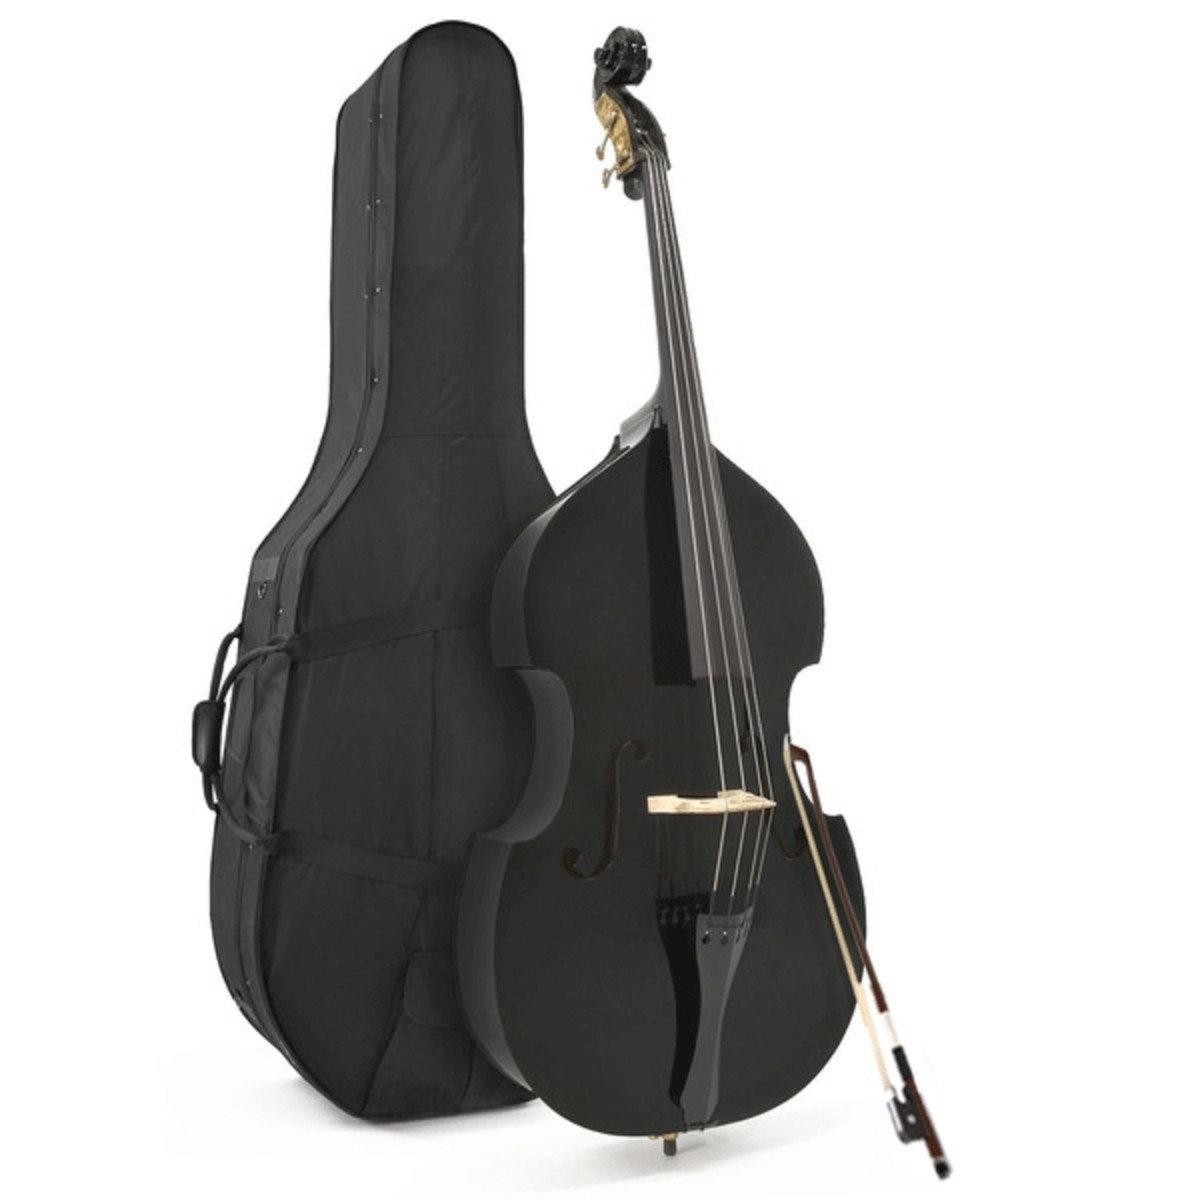 Image of Student 3/4 Double Bass Black by Gear4music